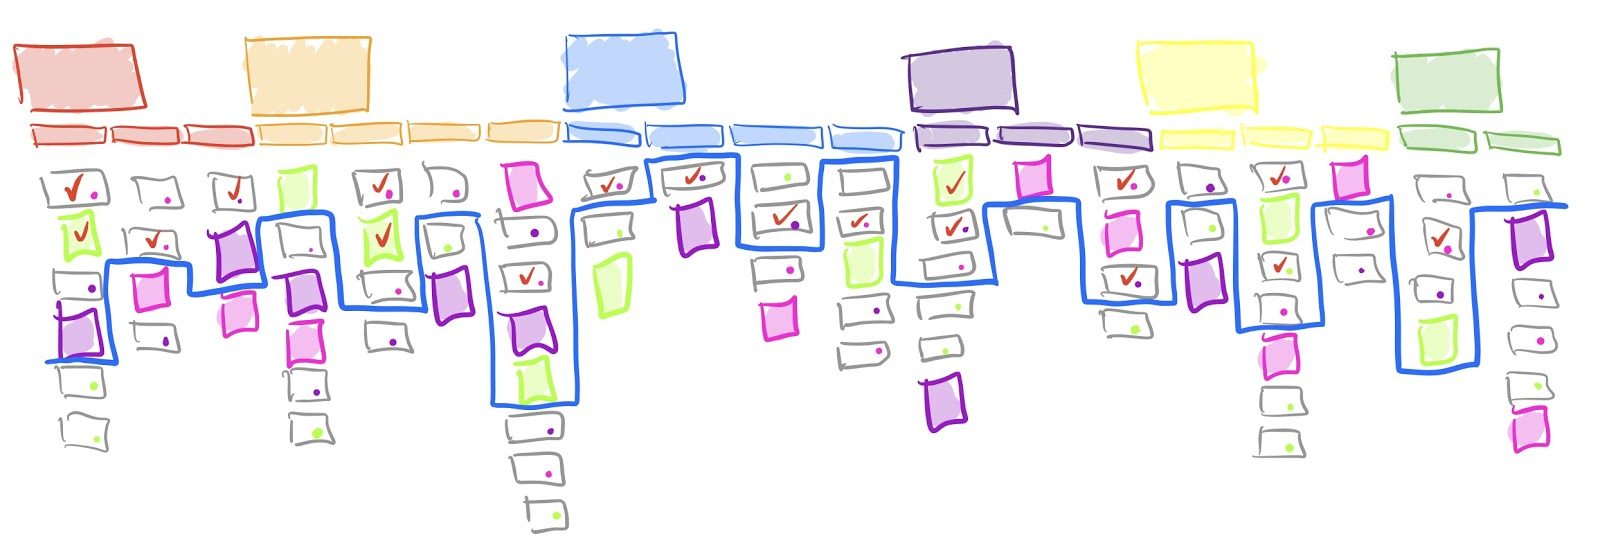 check of completed task, activities, steps, etc. on your story map